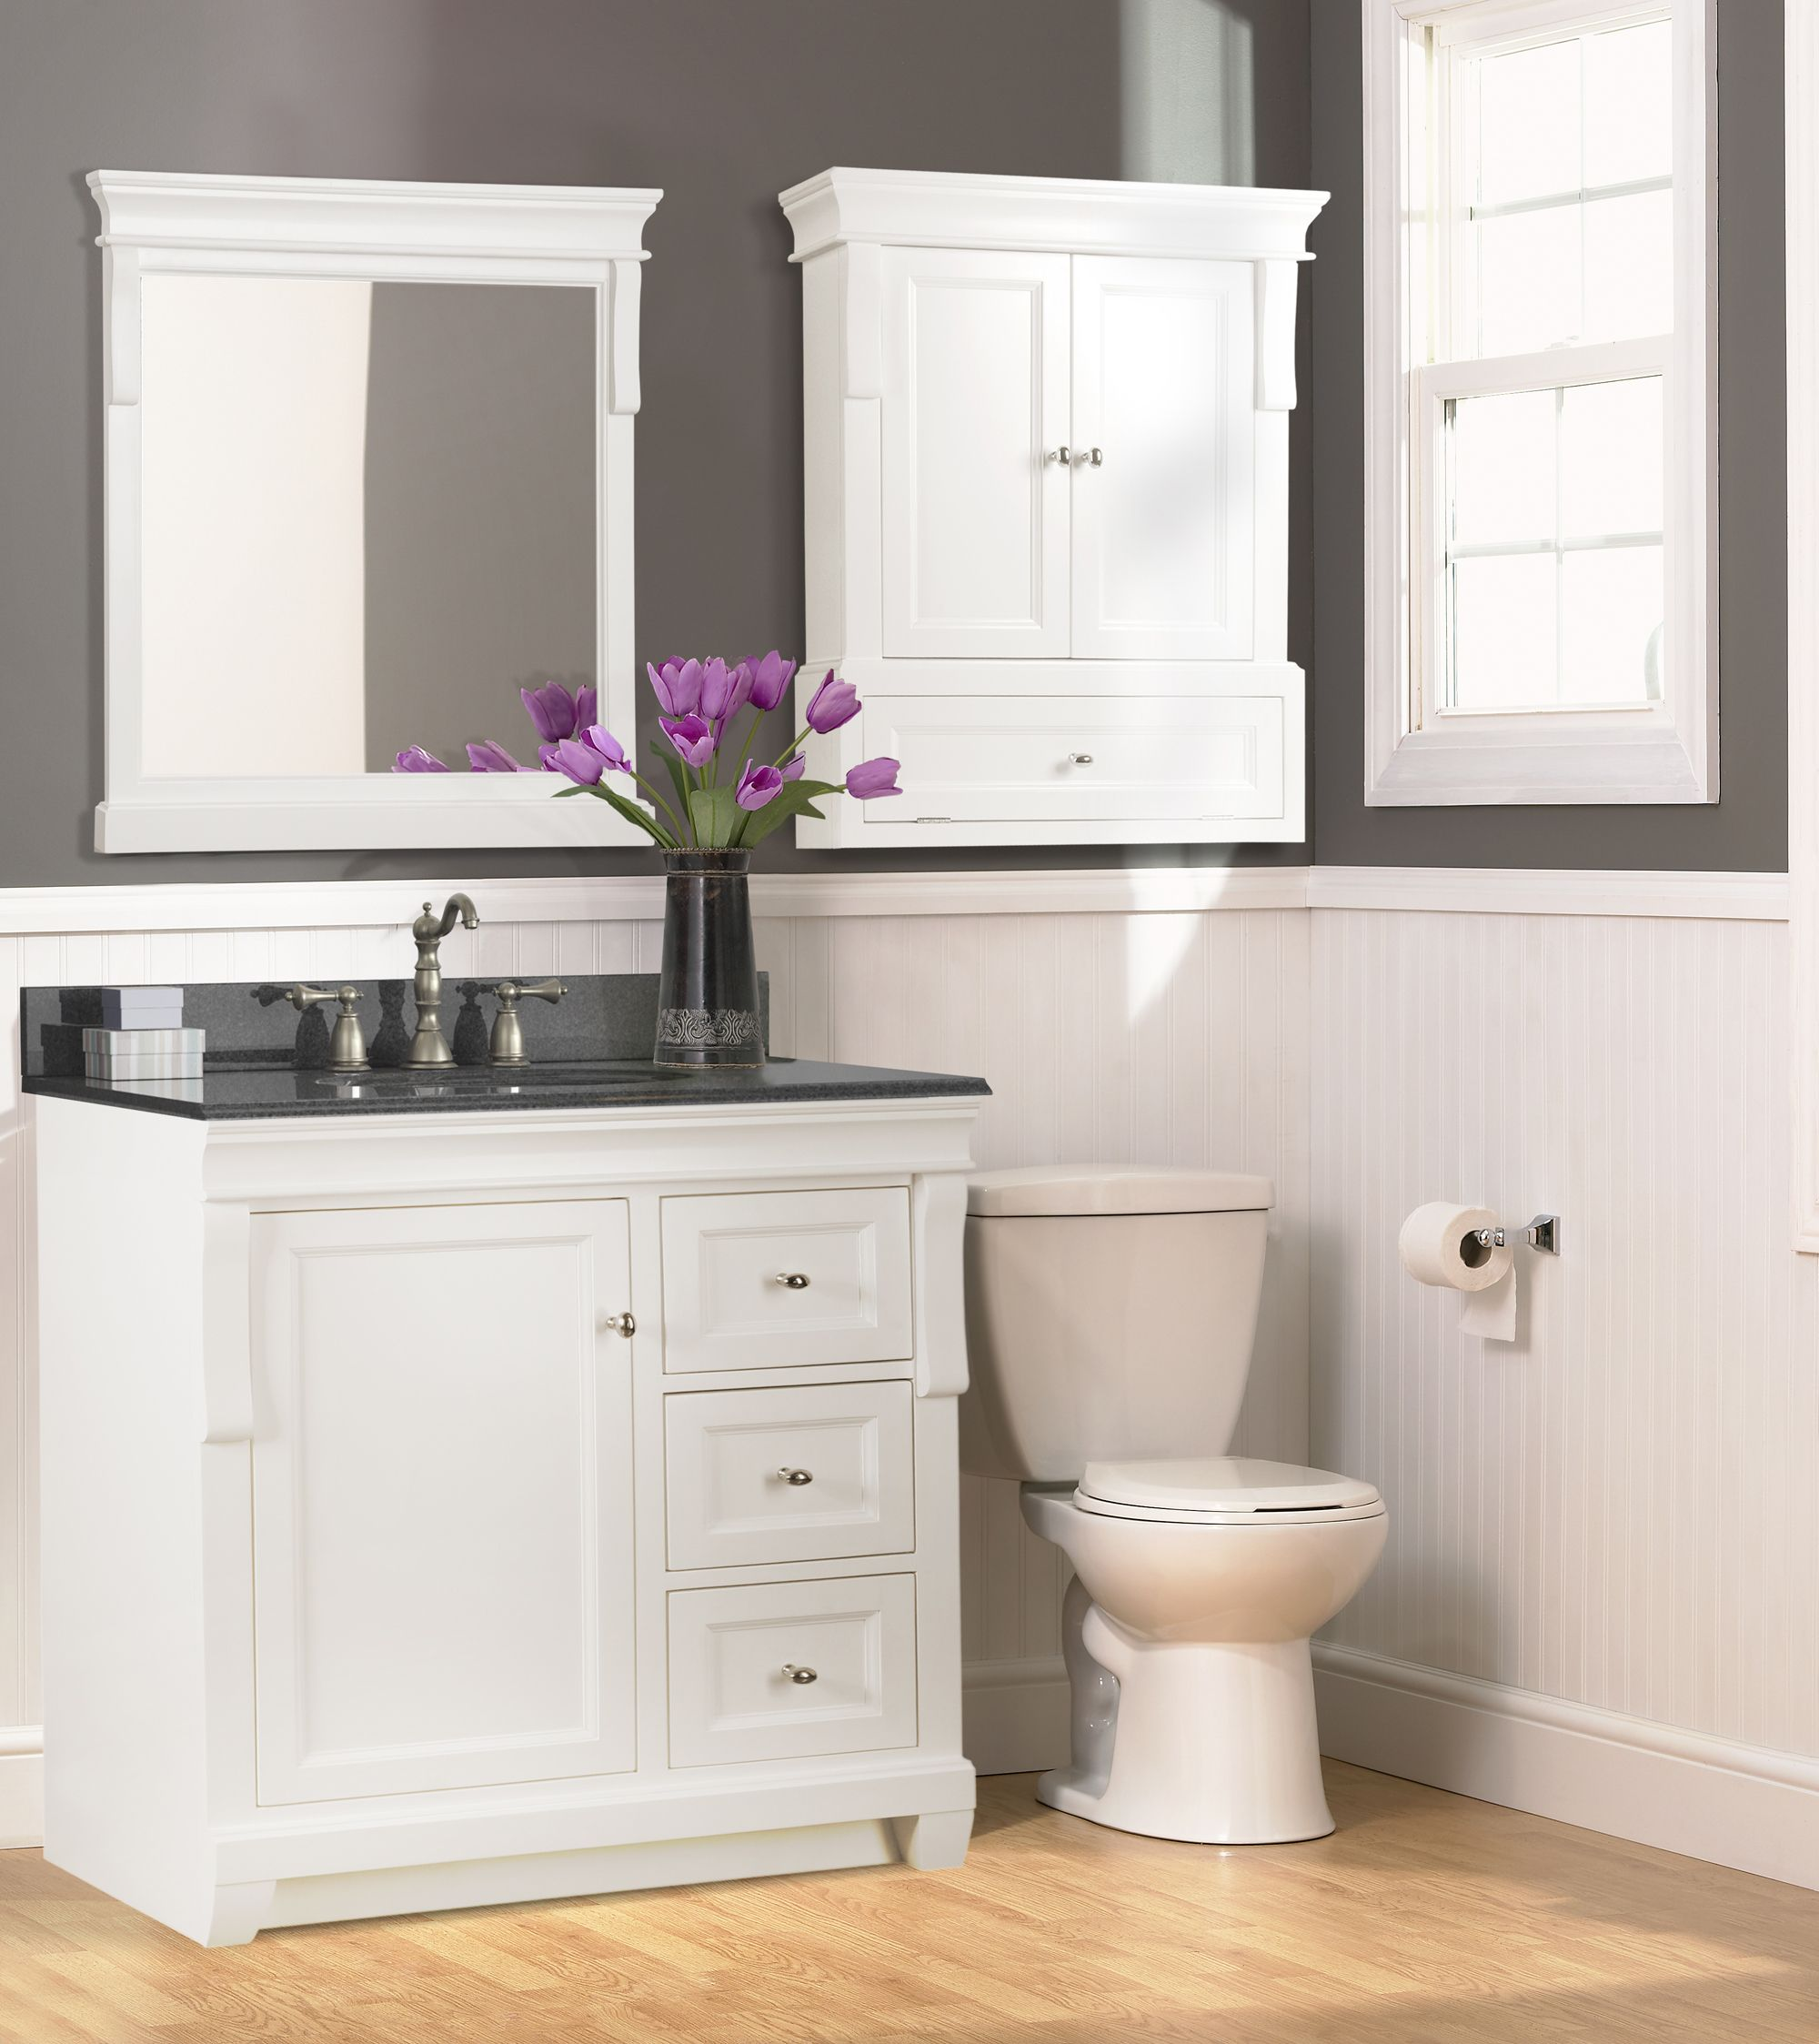 planning tips vanities with lauderdale cool fort vanity worth discount of design ft bathroom inspiration simple small depot interesting stunning home